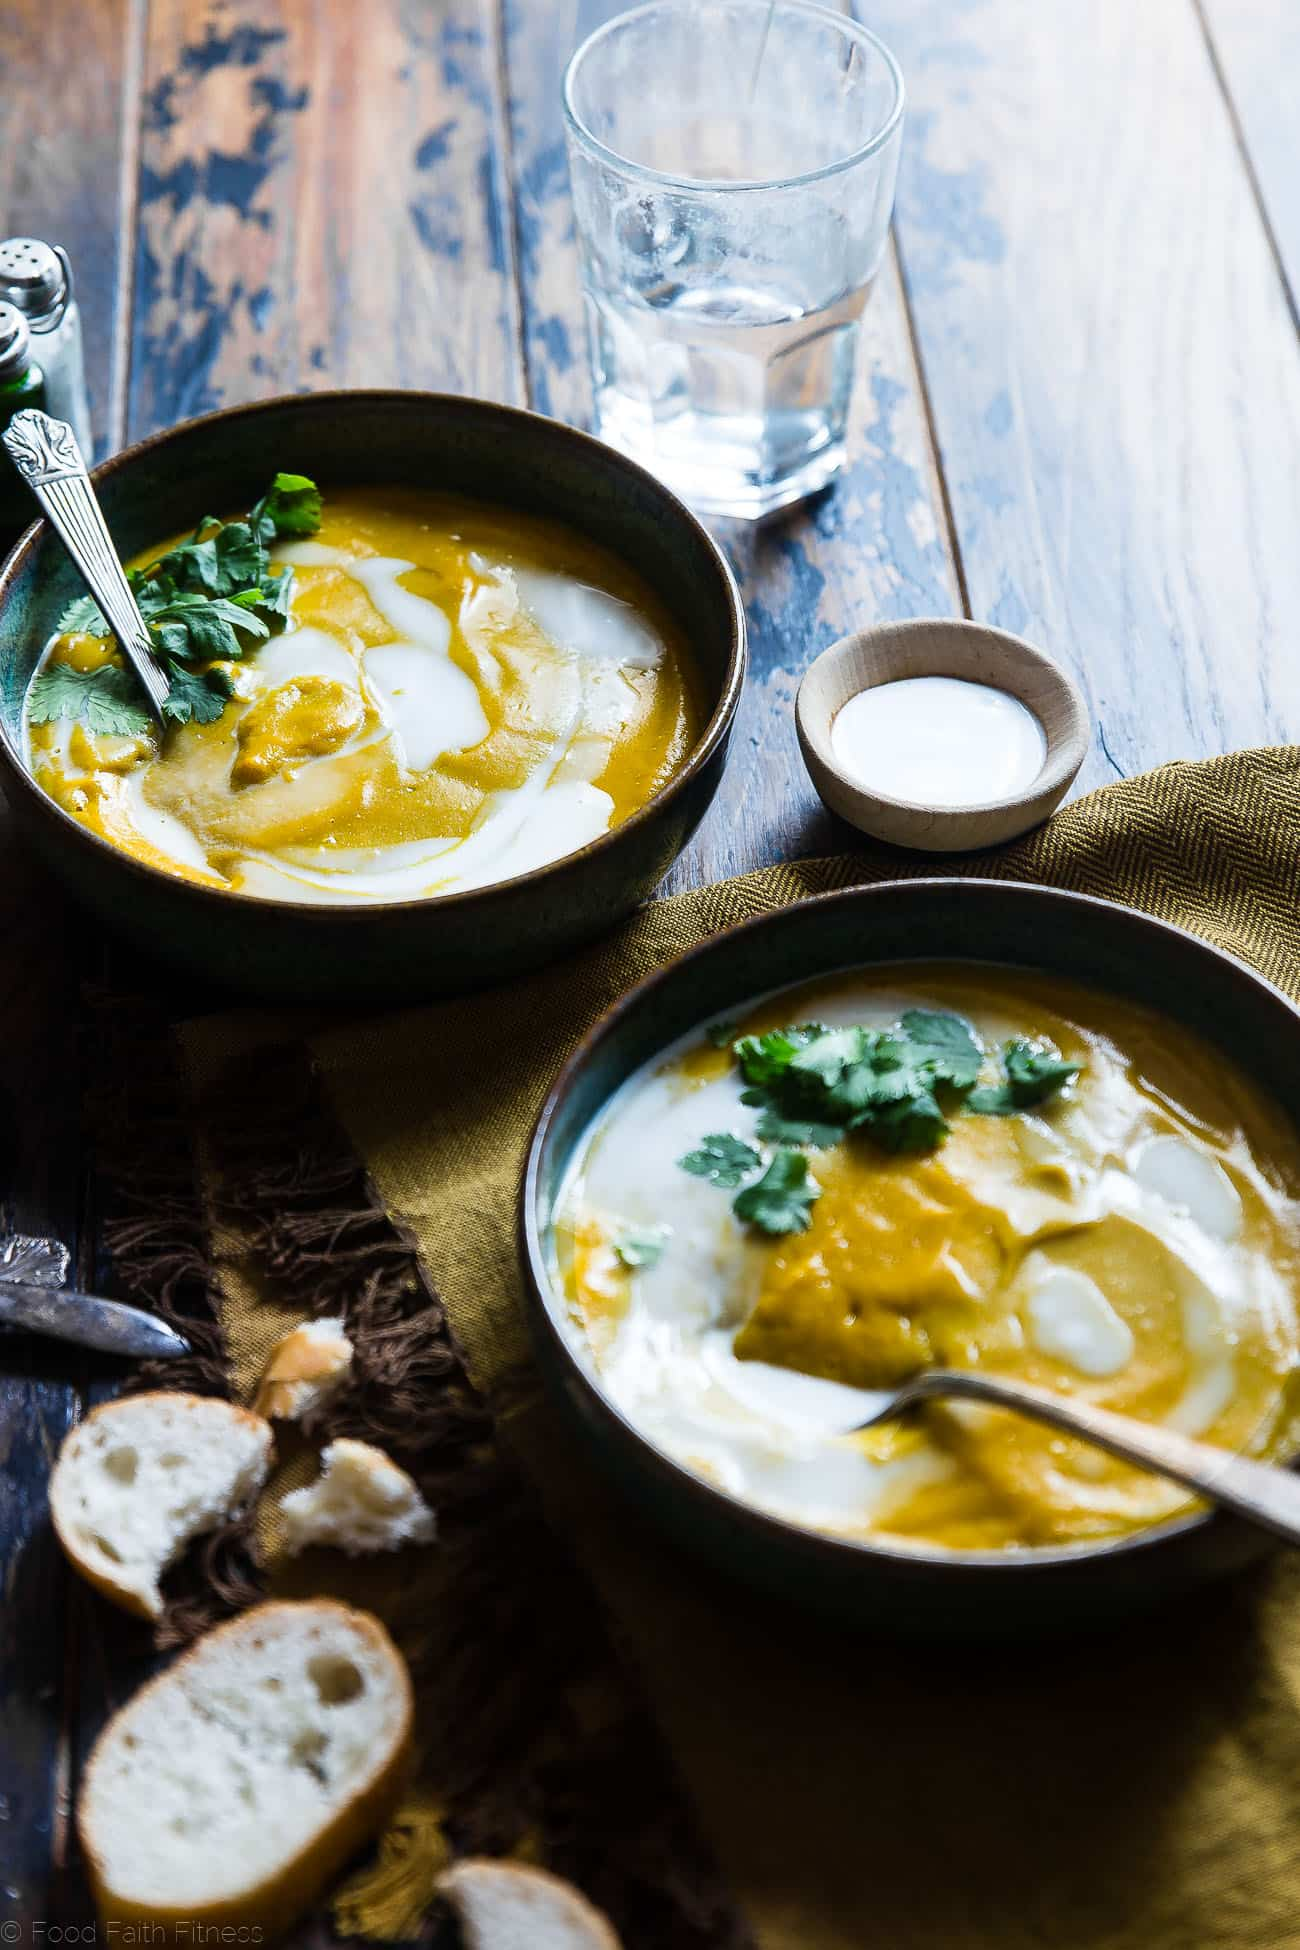 Coconut Curry Roasted Butternut Squash Soup - This spicy, paleo and vegan butternut squash soup is so creamy you'll never believe it's healthy, whole30 compliant and gluten and dairy free! | Foodfaithfitness.com | @FoodFaithFit